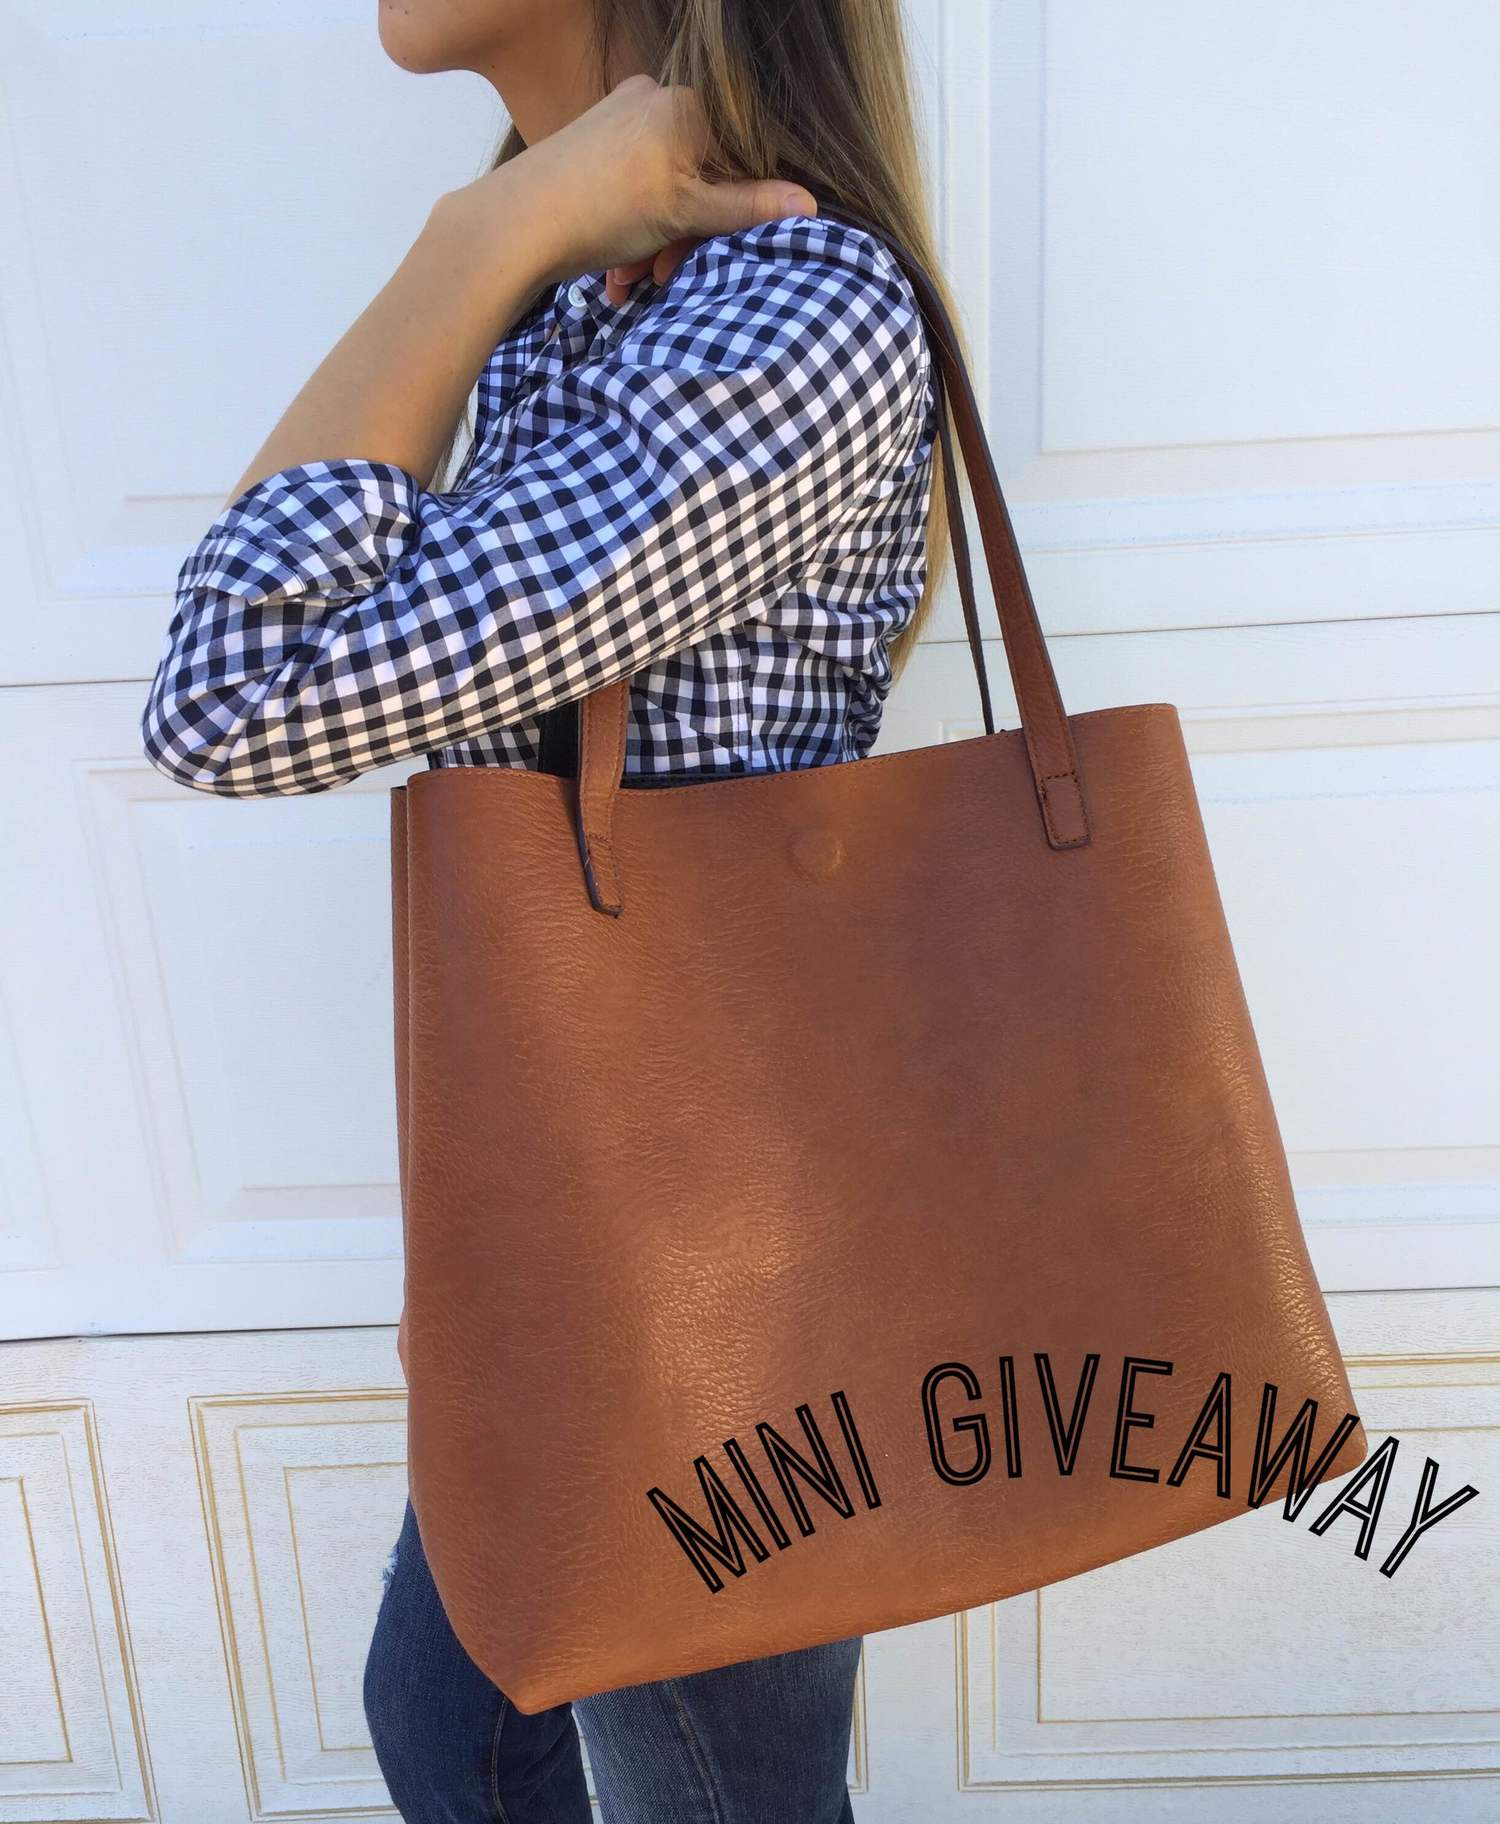 f645a5b82f Mini Giveaway: Reversible Faux Leather Tote & Wristlet from Nordstrom —  chichi made